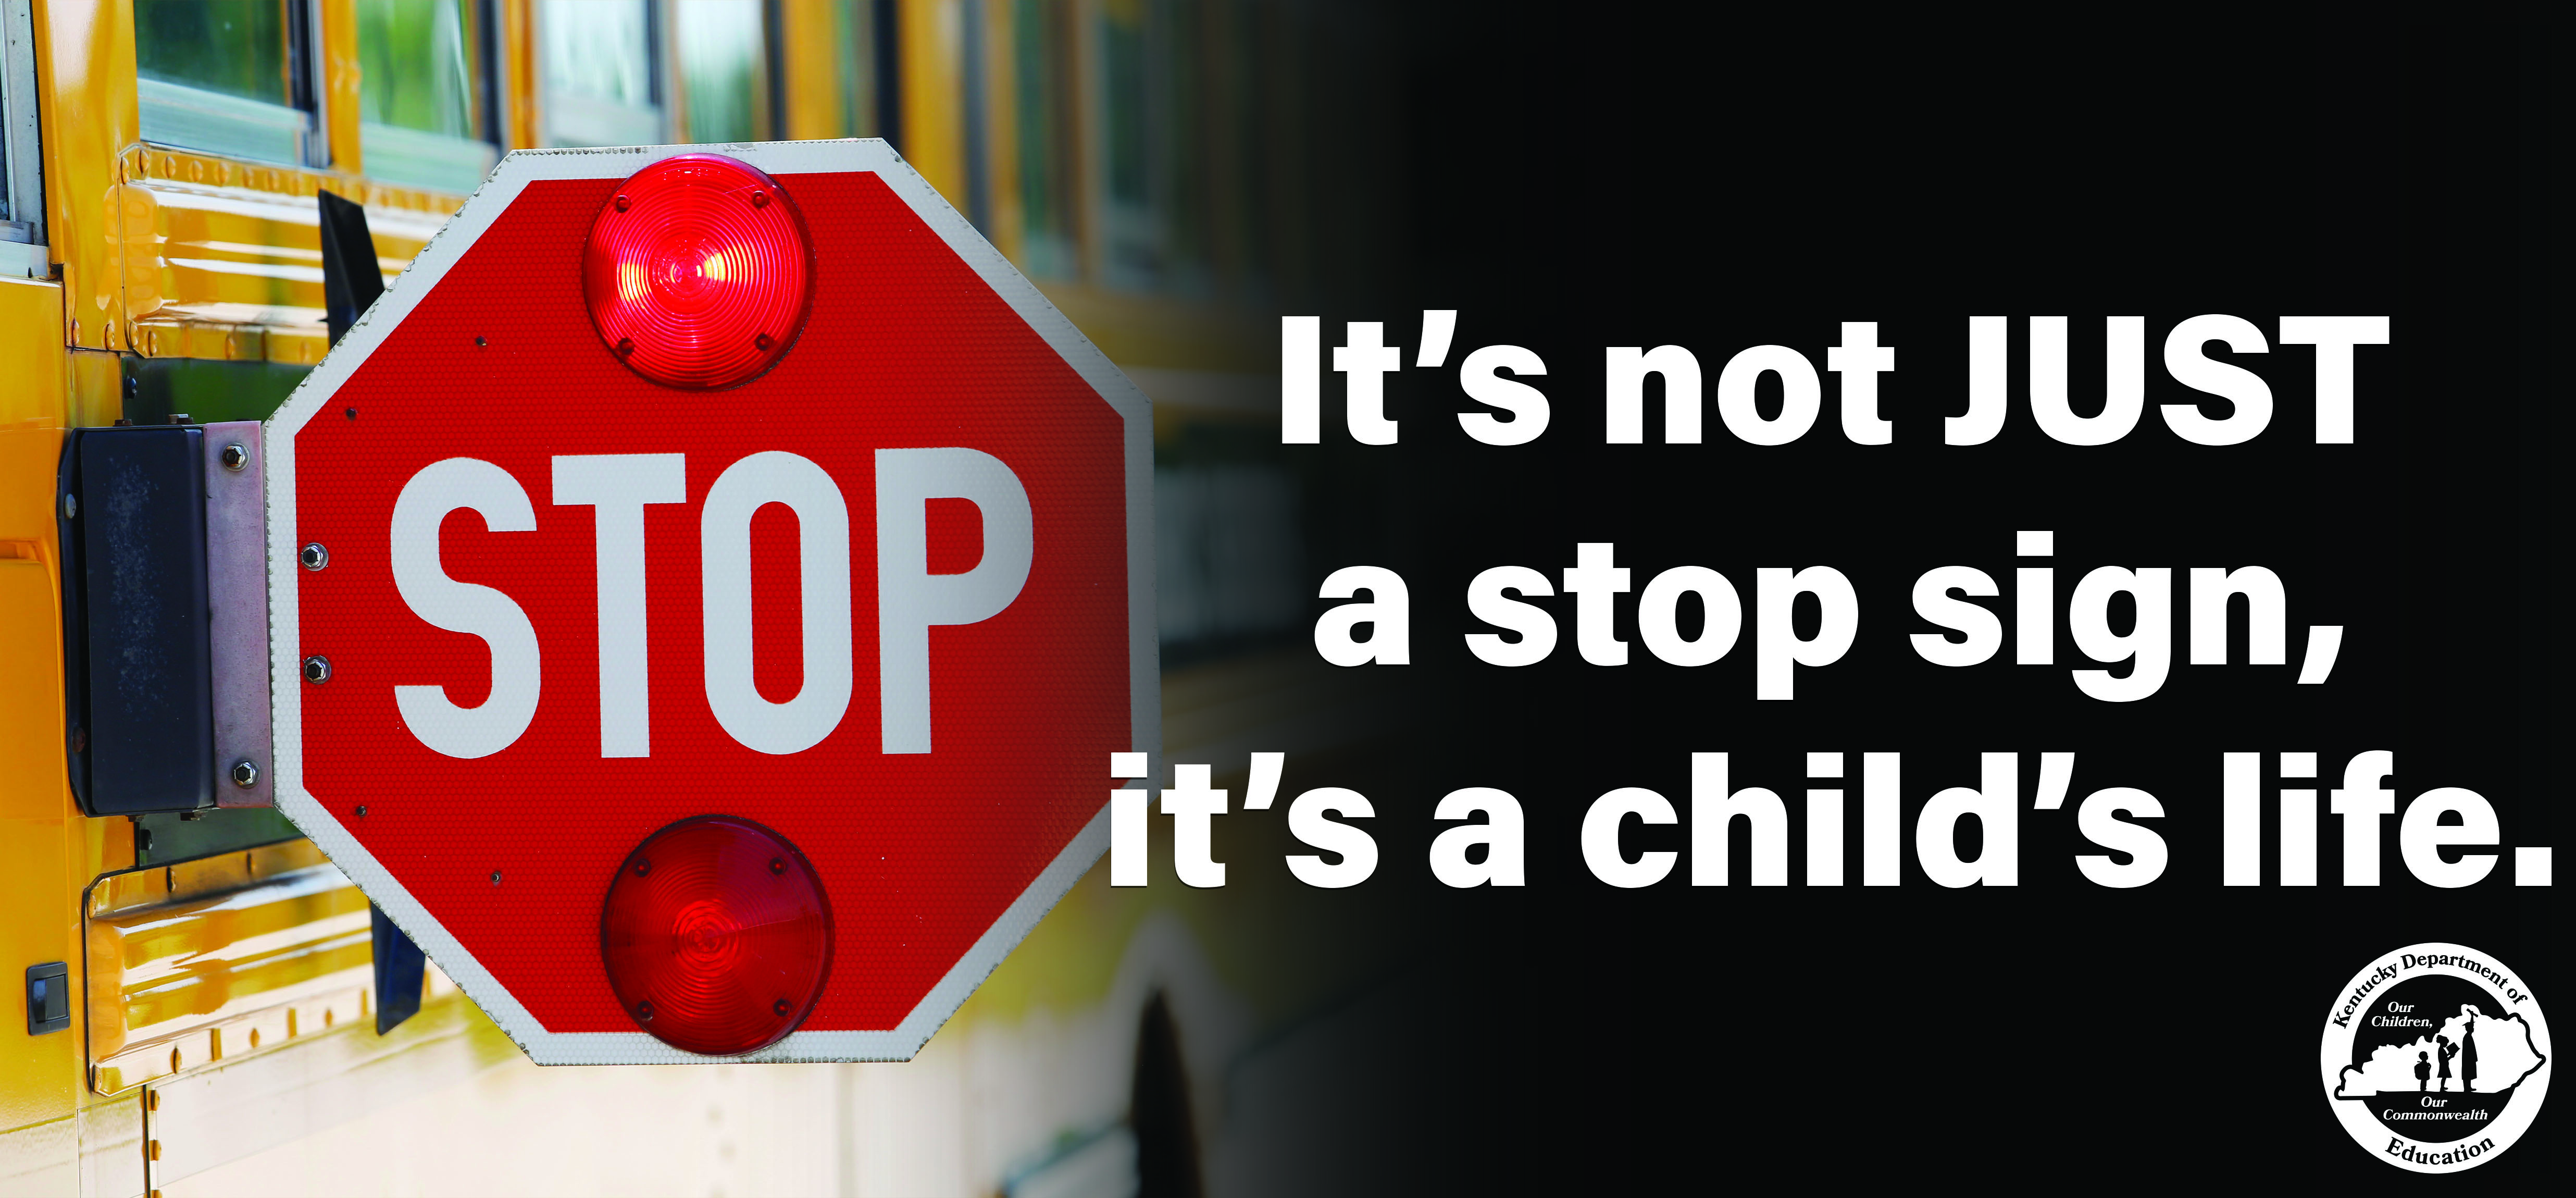 Stop sign billboard